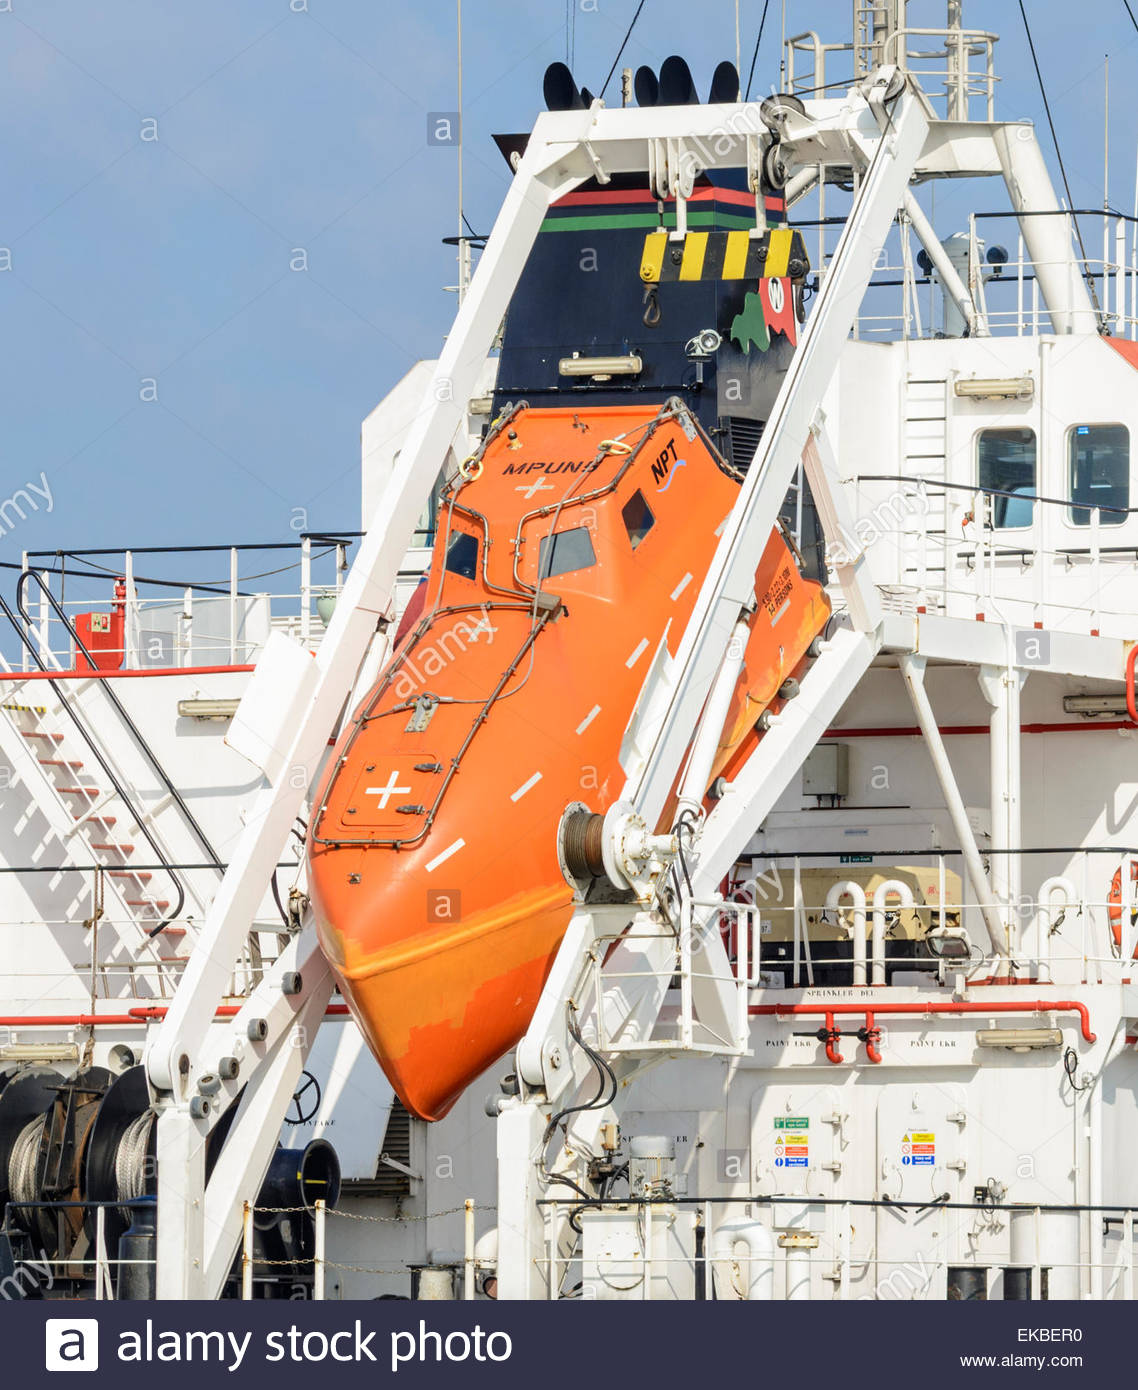 Freefall lifeboat at the rear of the oil tanker Whitonia. - Stock Image